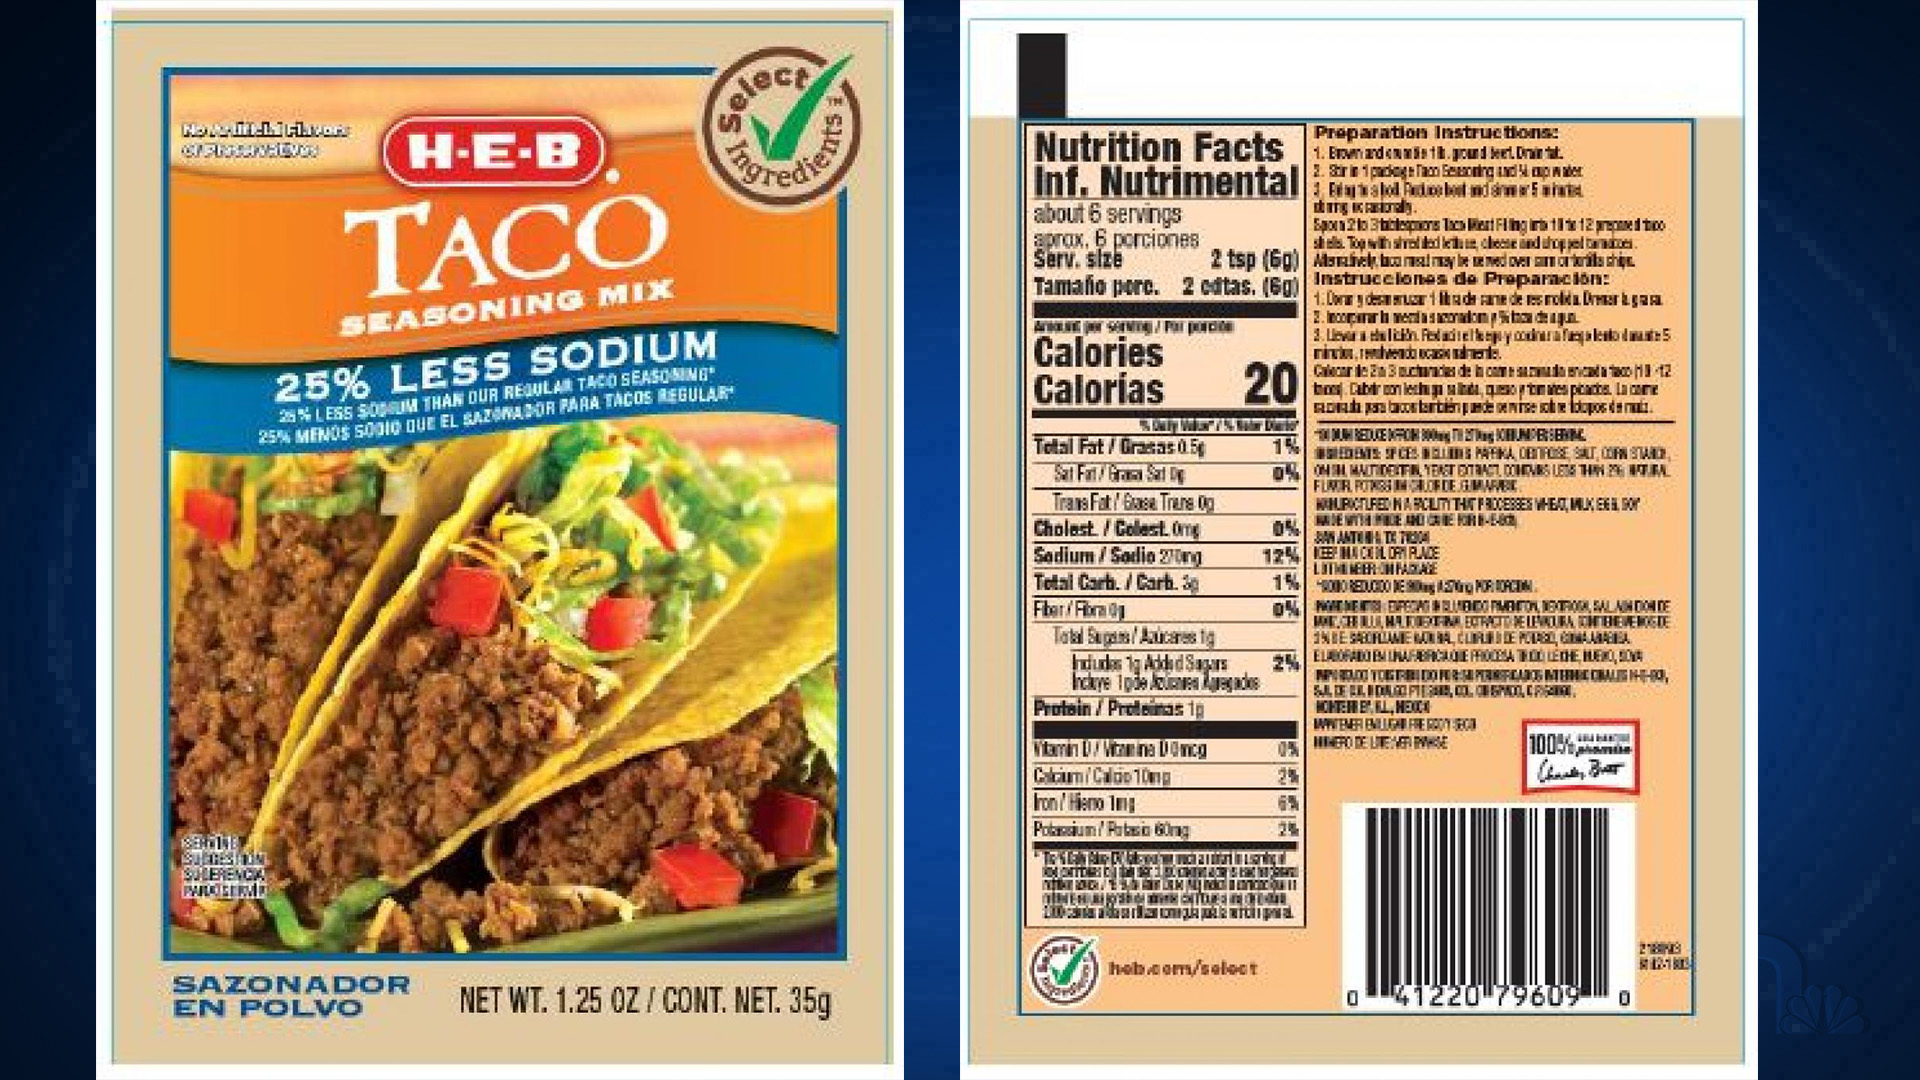 Great Value H E B Taco Seasoning Recalled Over Salmonella Contamination Concerns Kxan Austin